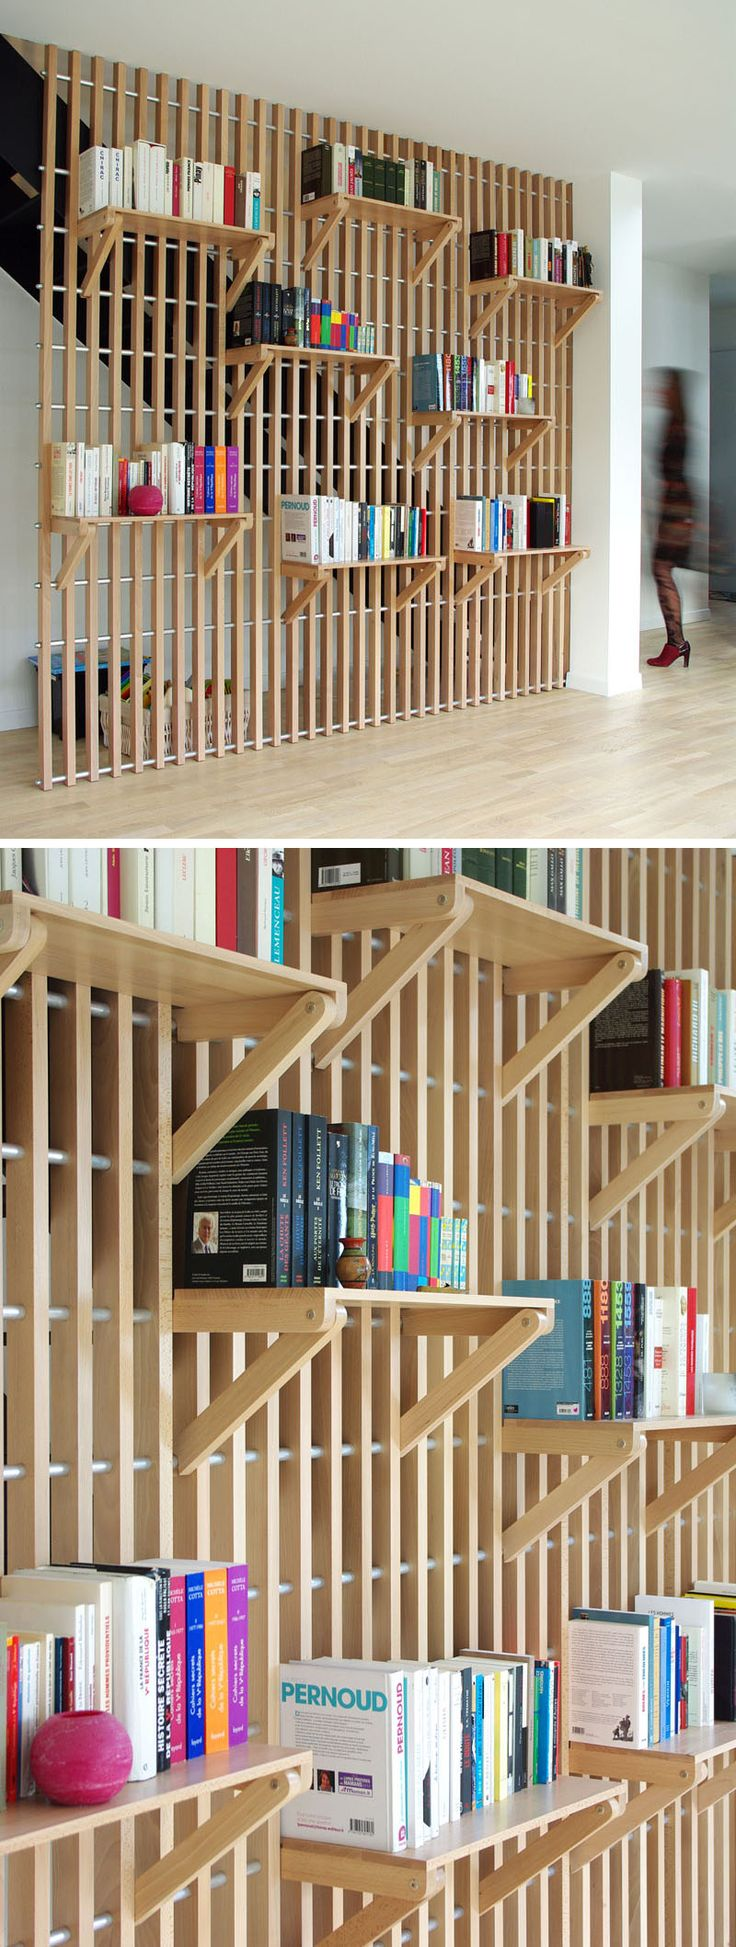 This Custom Designed Shelf System Is Used To Store Books And Act As A Guard Rail For The Staircase